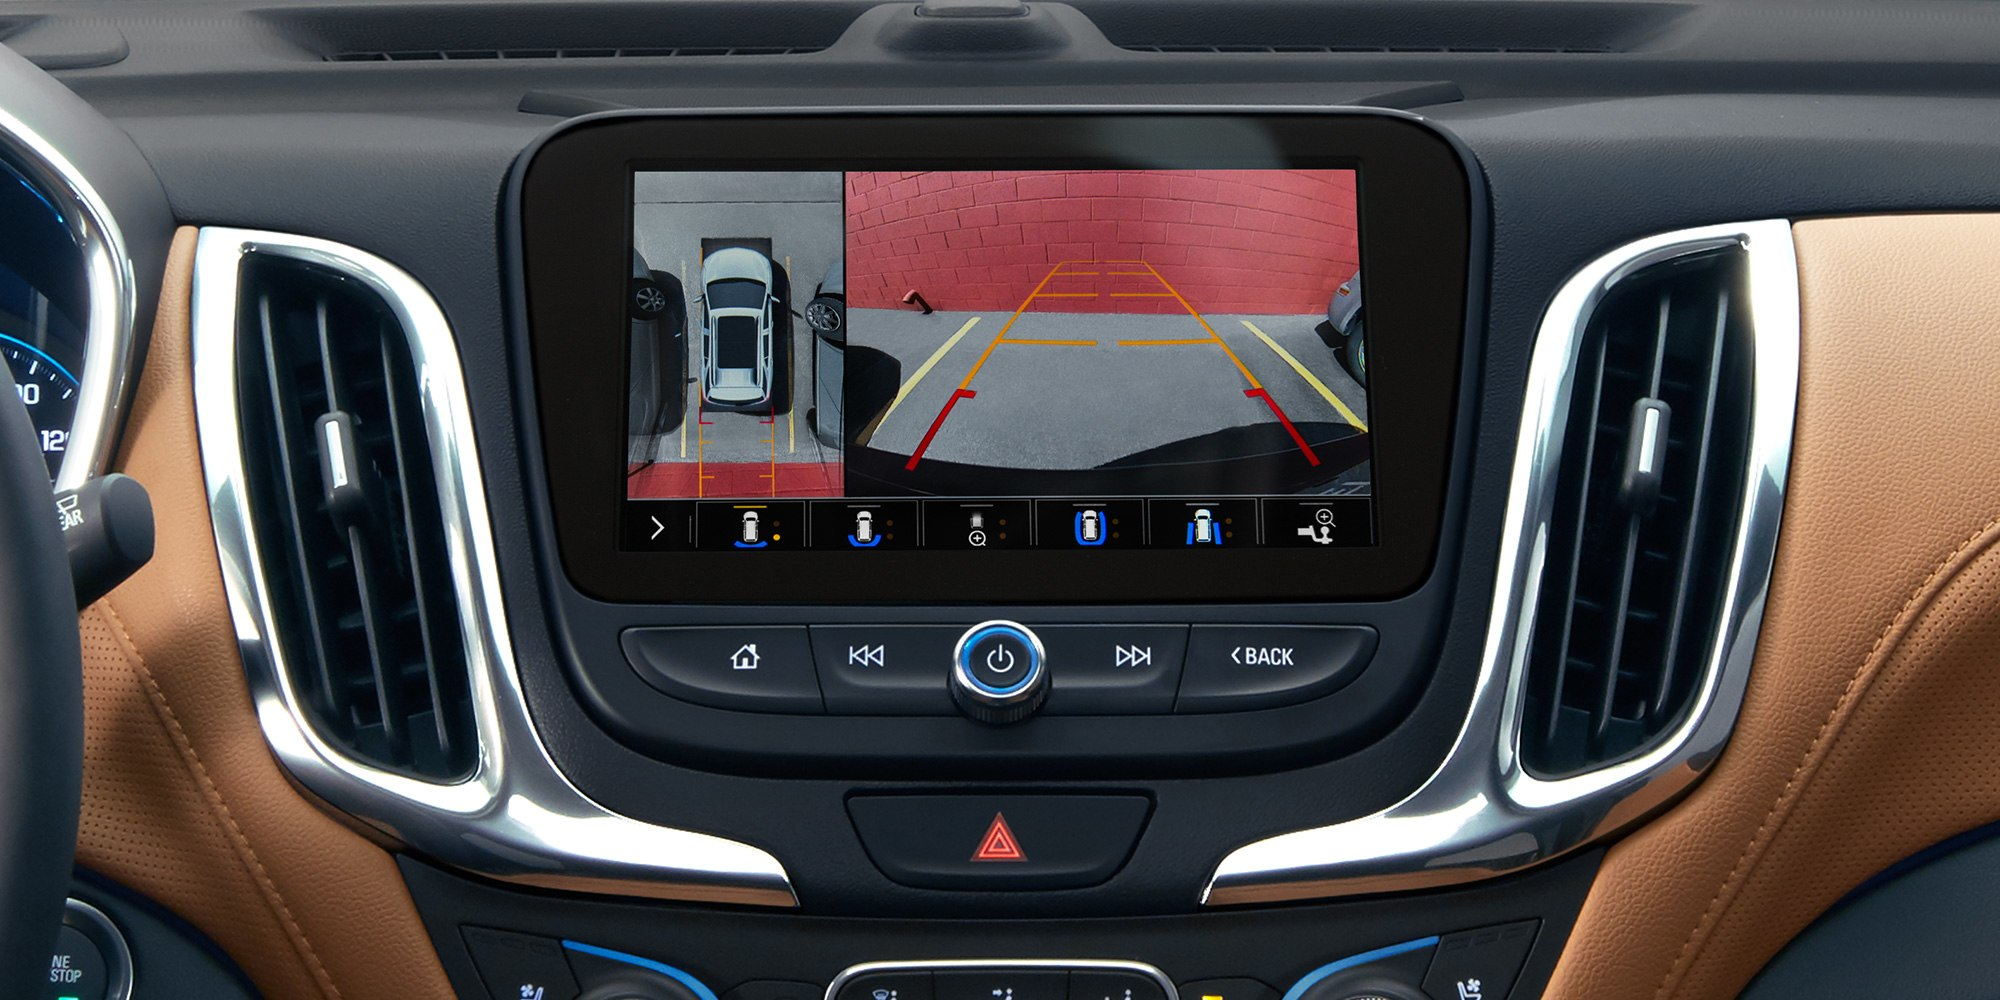 You'll Love the Equinox's Infotainment System!